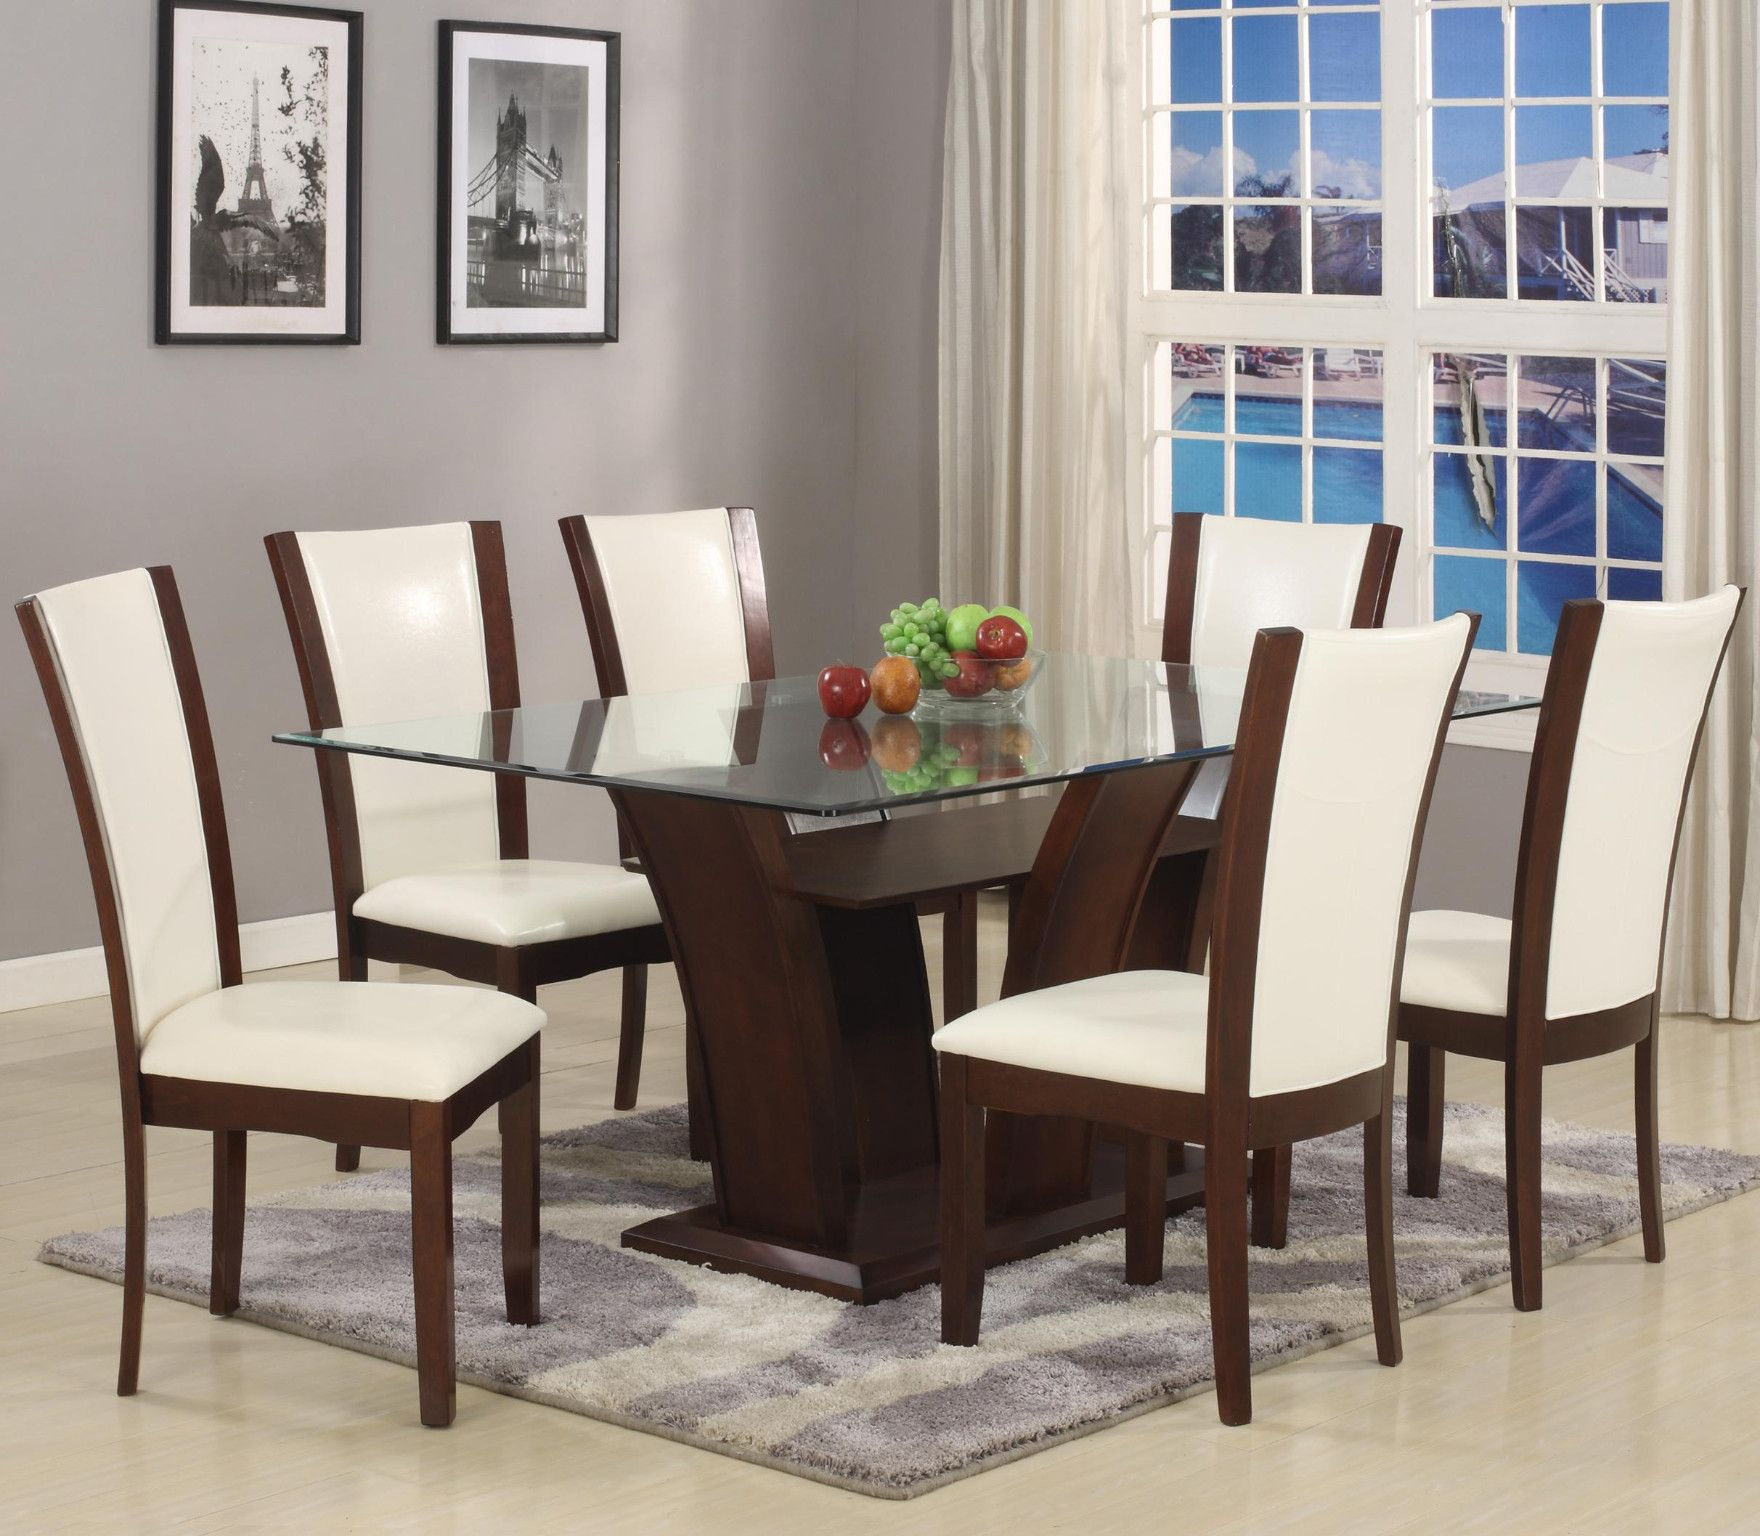 Camelia Dining Room Suite In White Table And 6 Side Chairs 799 00